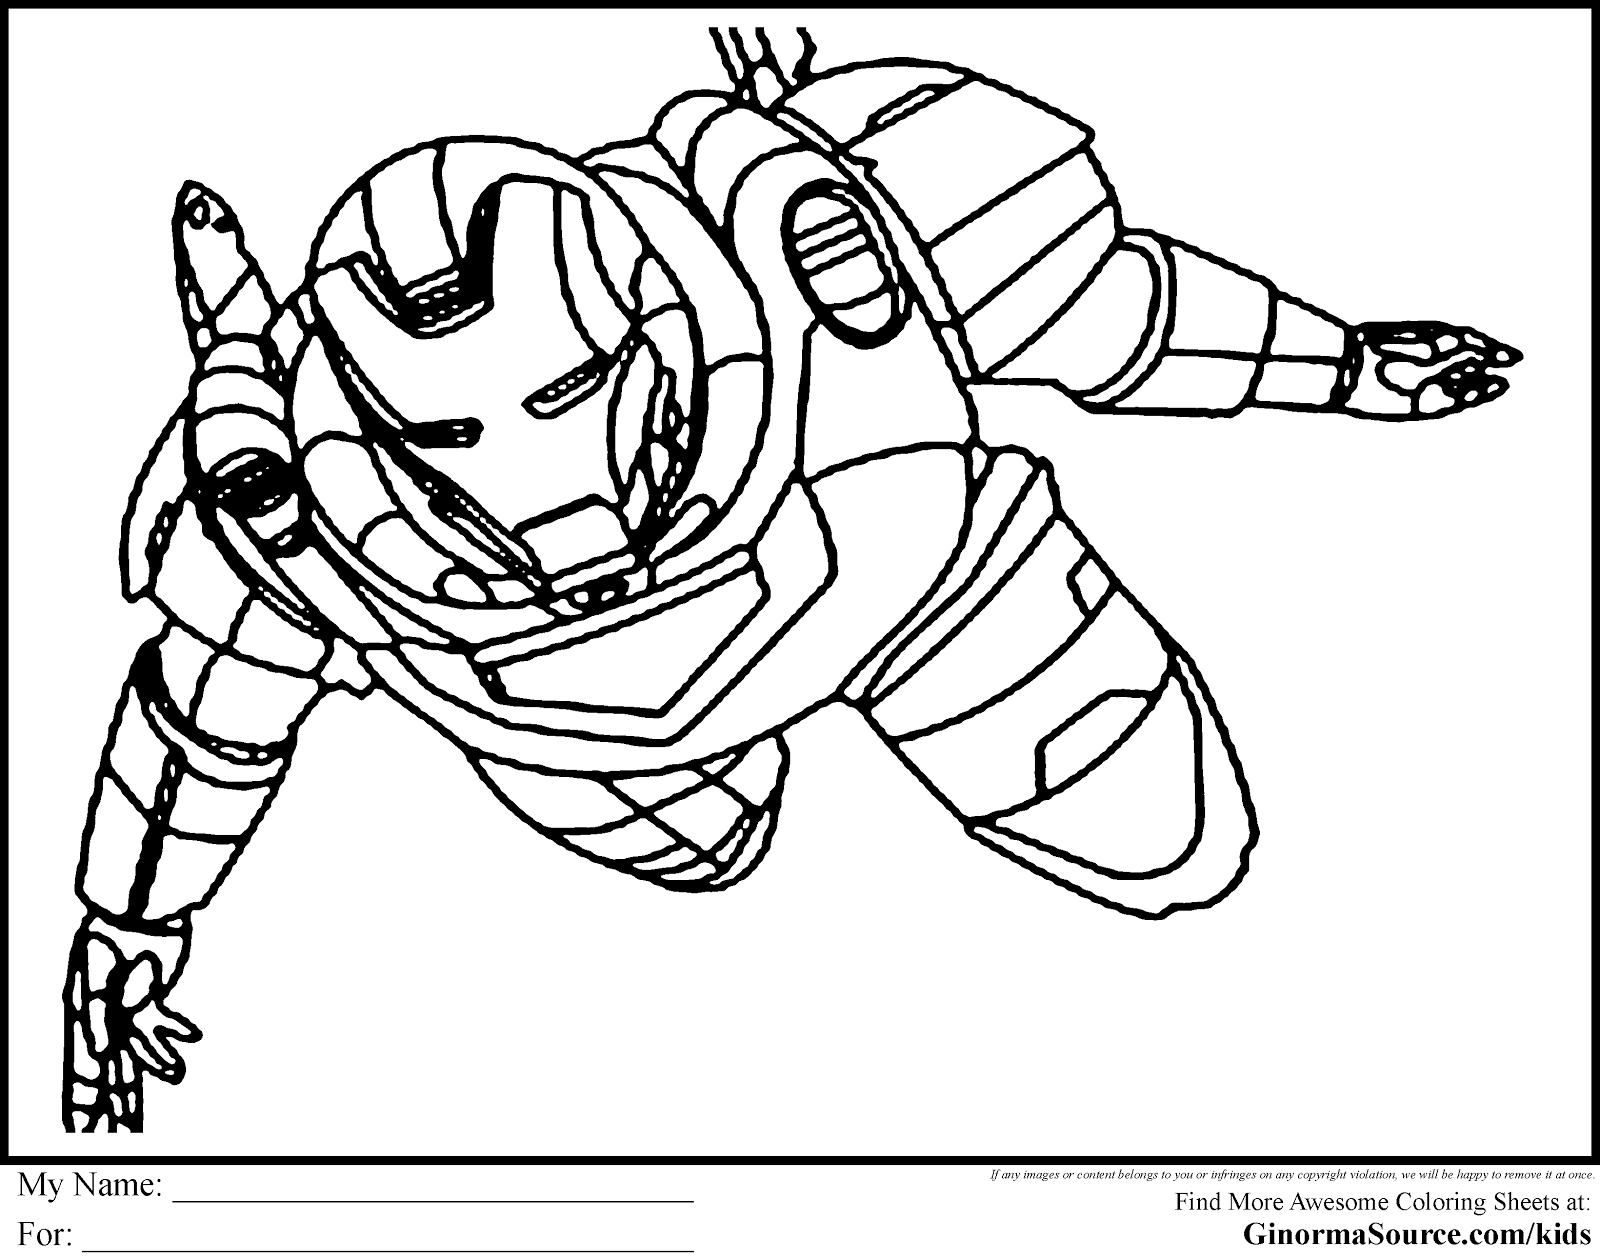 action hero coloring pages fight action coloring pages hellokidscom pages coloring action hero